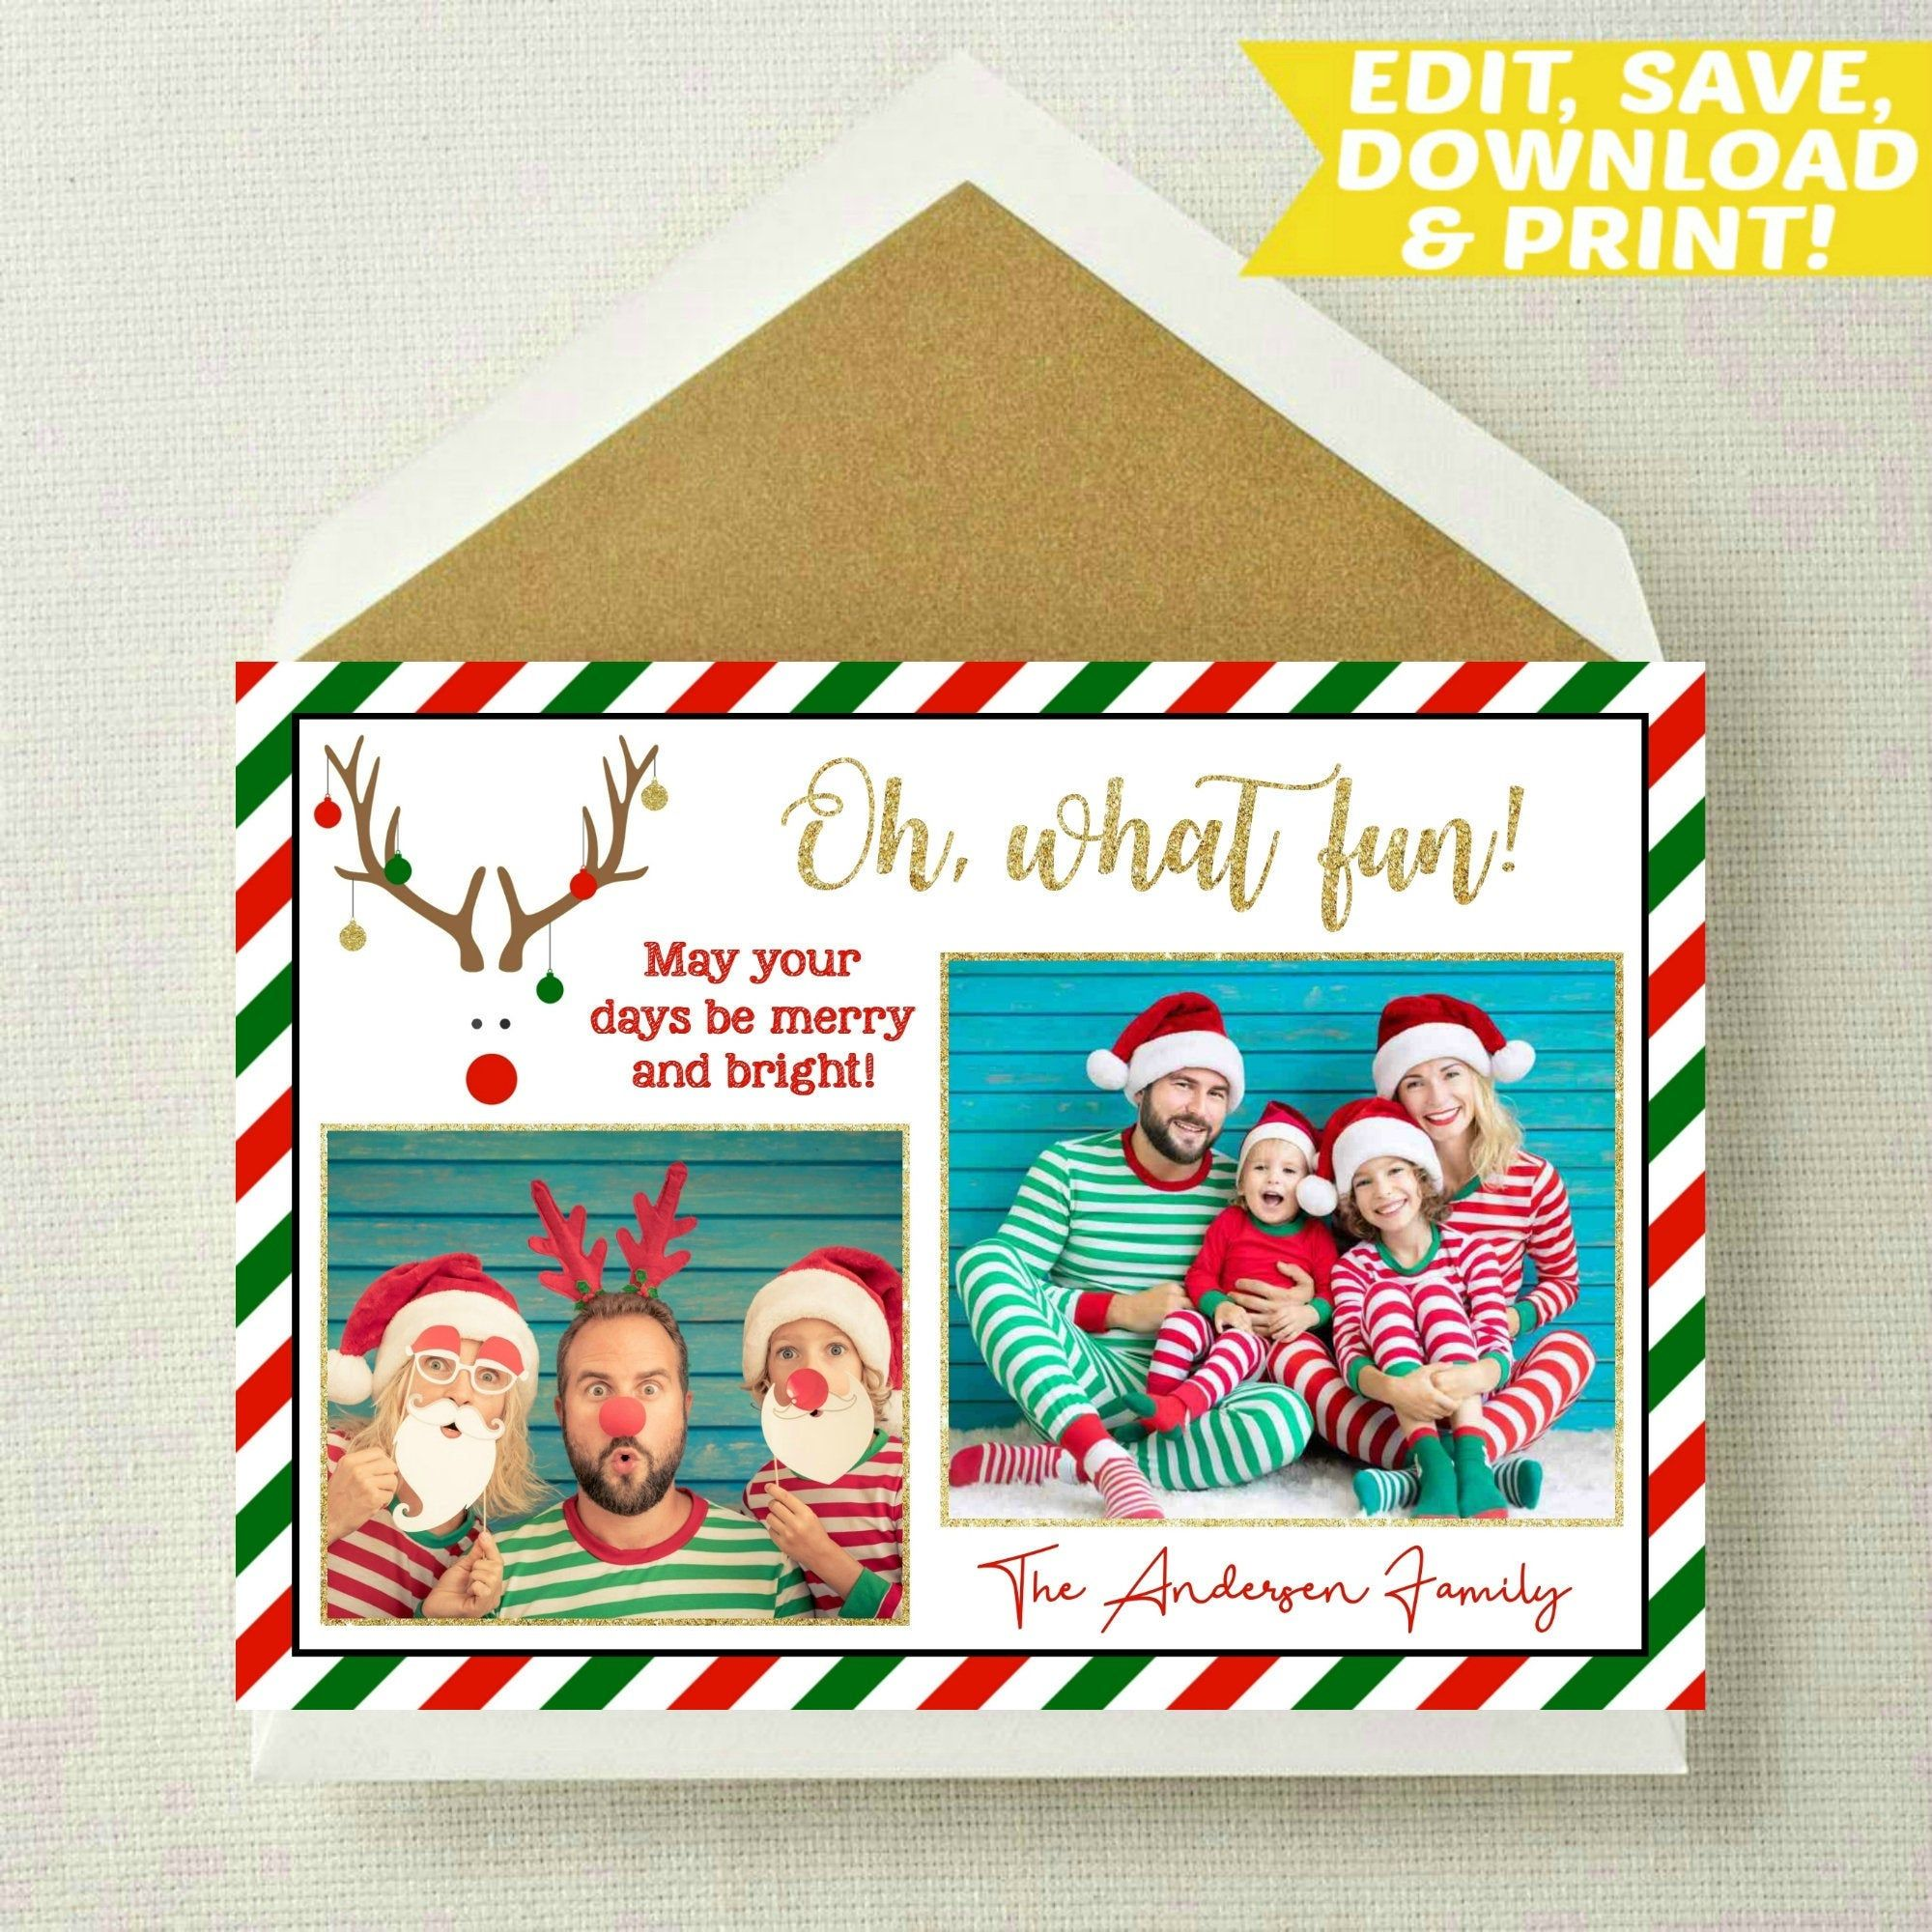 Editable Christmas Card Reindeer Christmas Card Holiday Card Funny Family Christmas Ca Family Christmas Cards Funny Holiday Cards Christmas Card Template